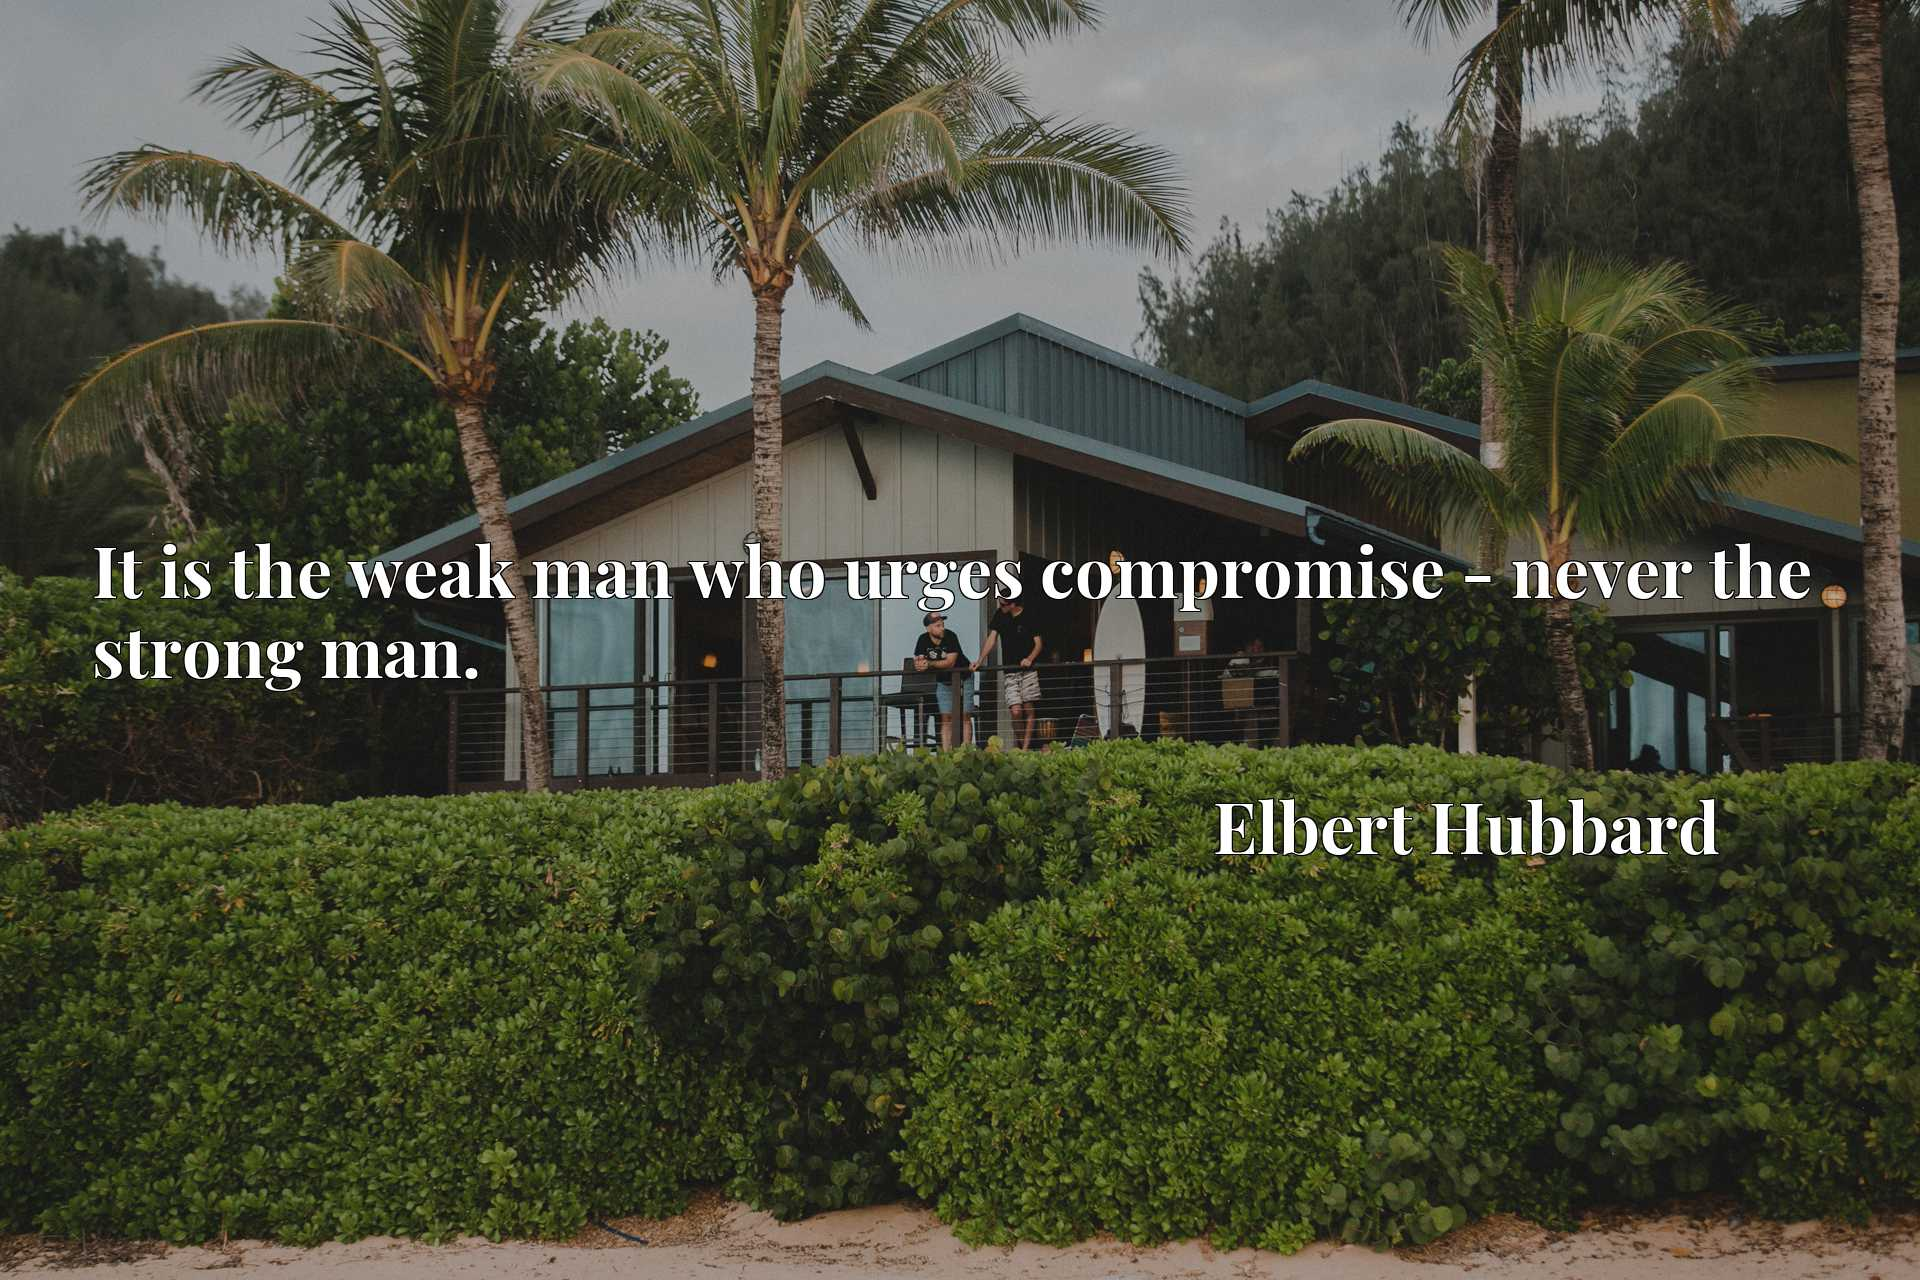 Quote Picture :It is the weak man who urges compromise - never the strong man.